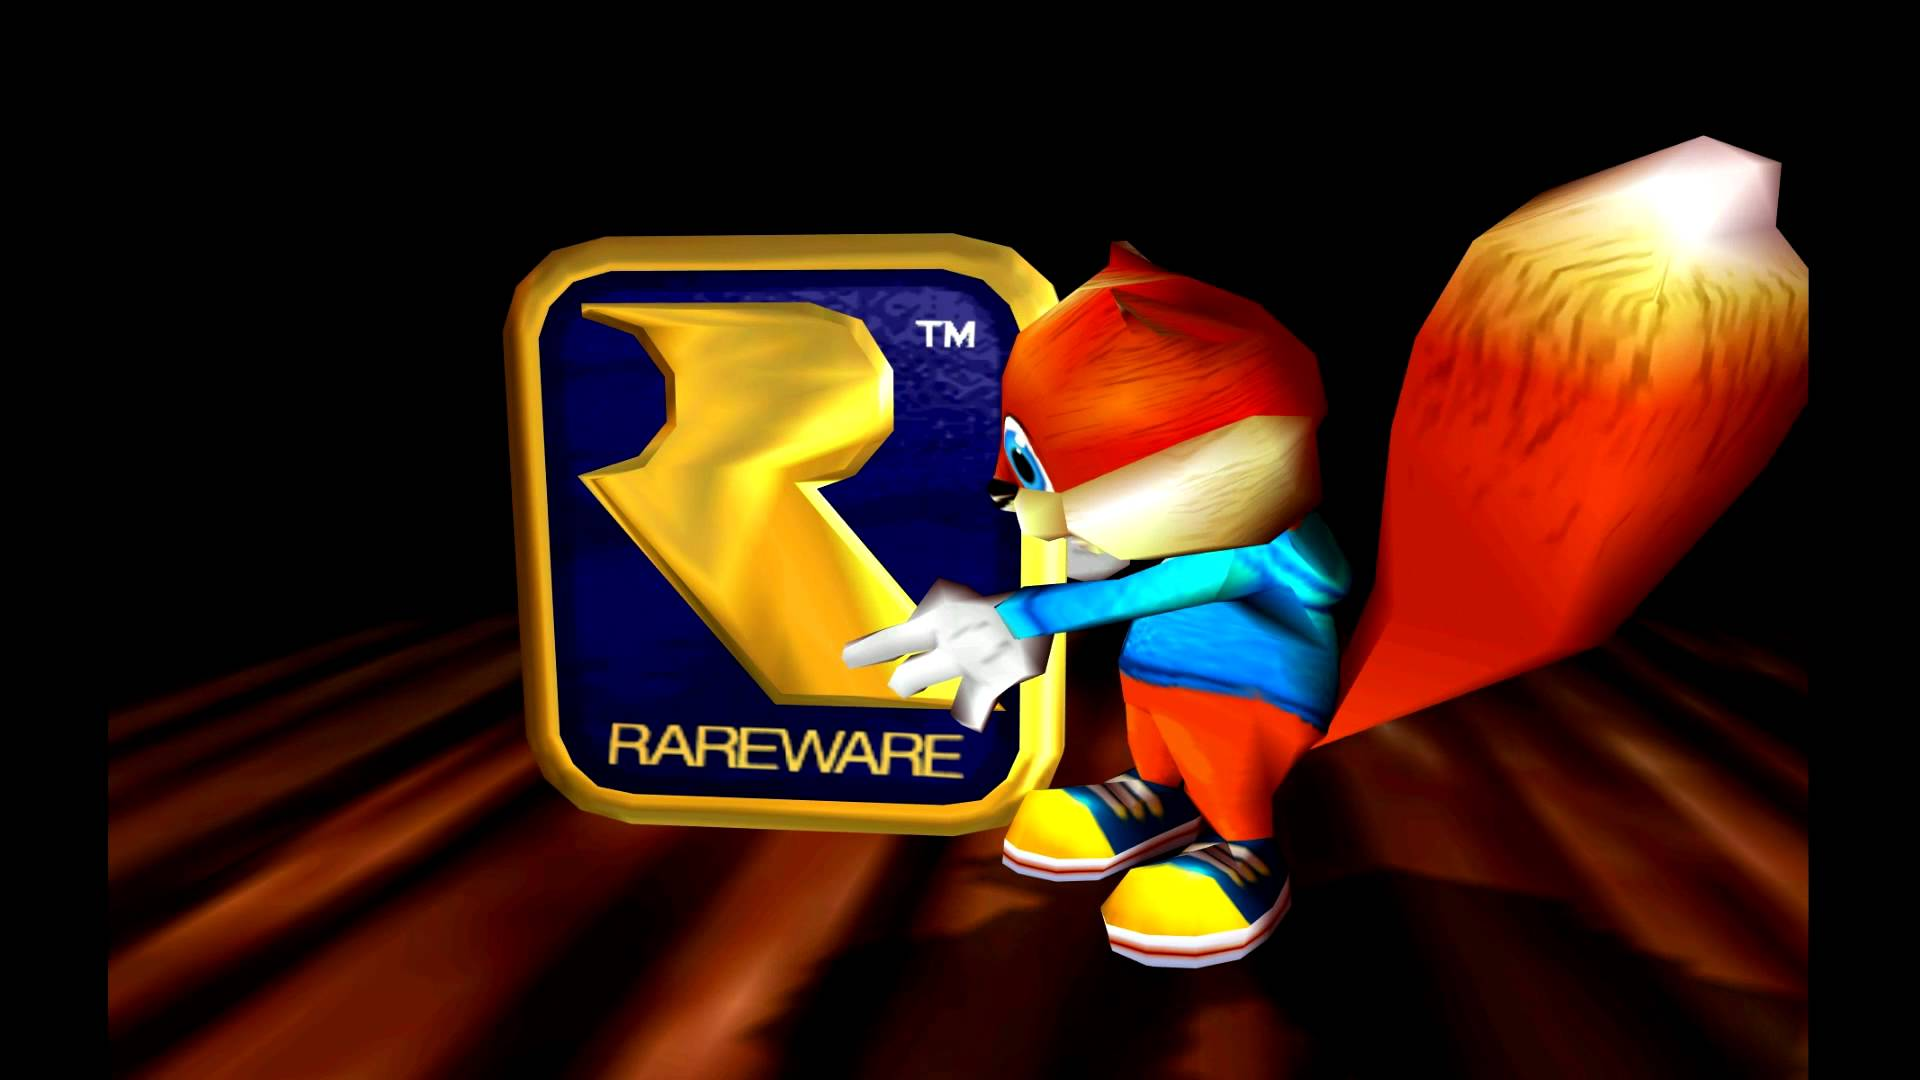 Conker's Bad Fur Day Sequel Is Way Overdue